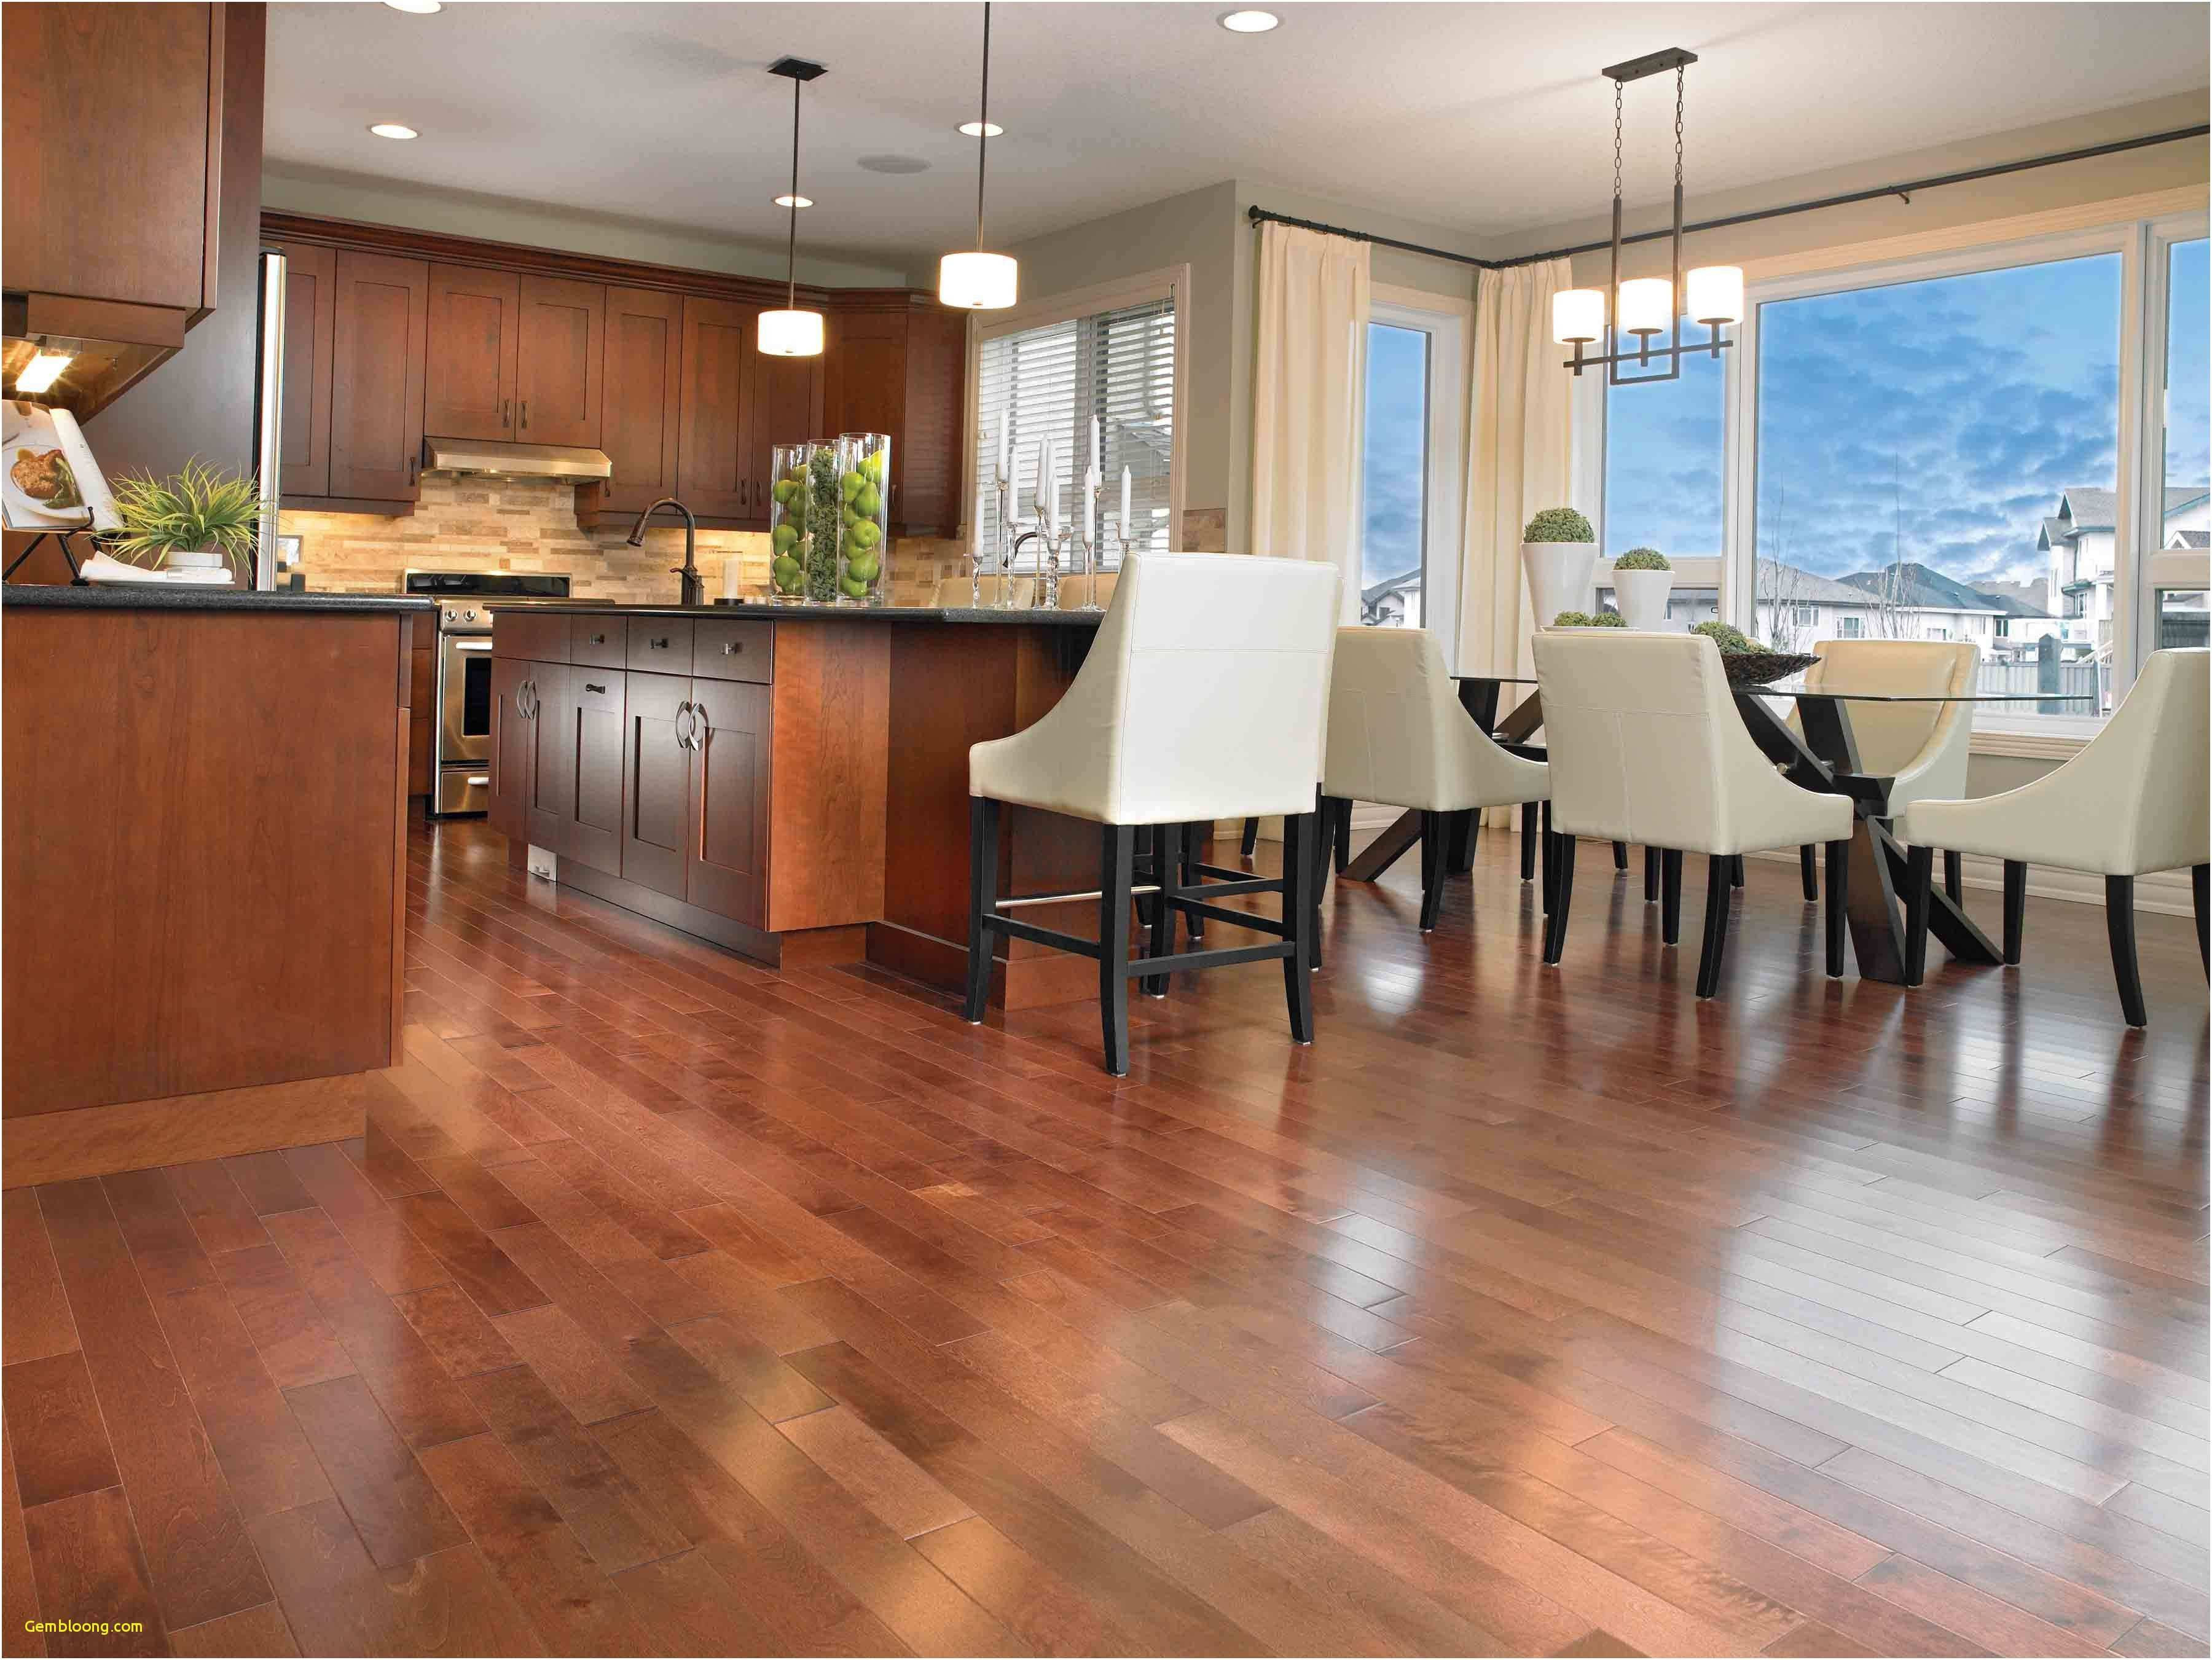 wide plank solid hardwood flooring of wood for floors facesinnature with furniture wood floors flooring nj furniture design hard wood flooring new 0d grace place